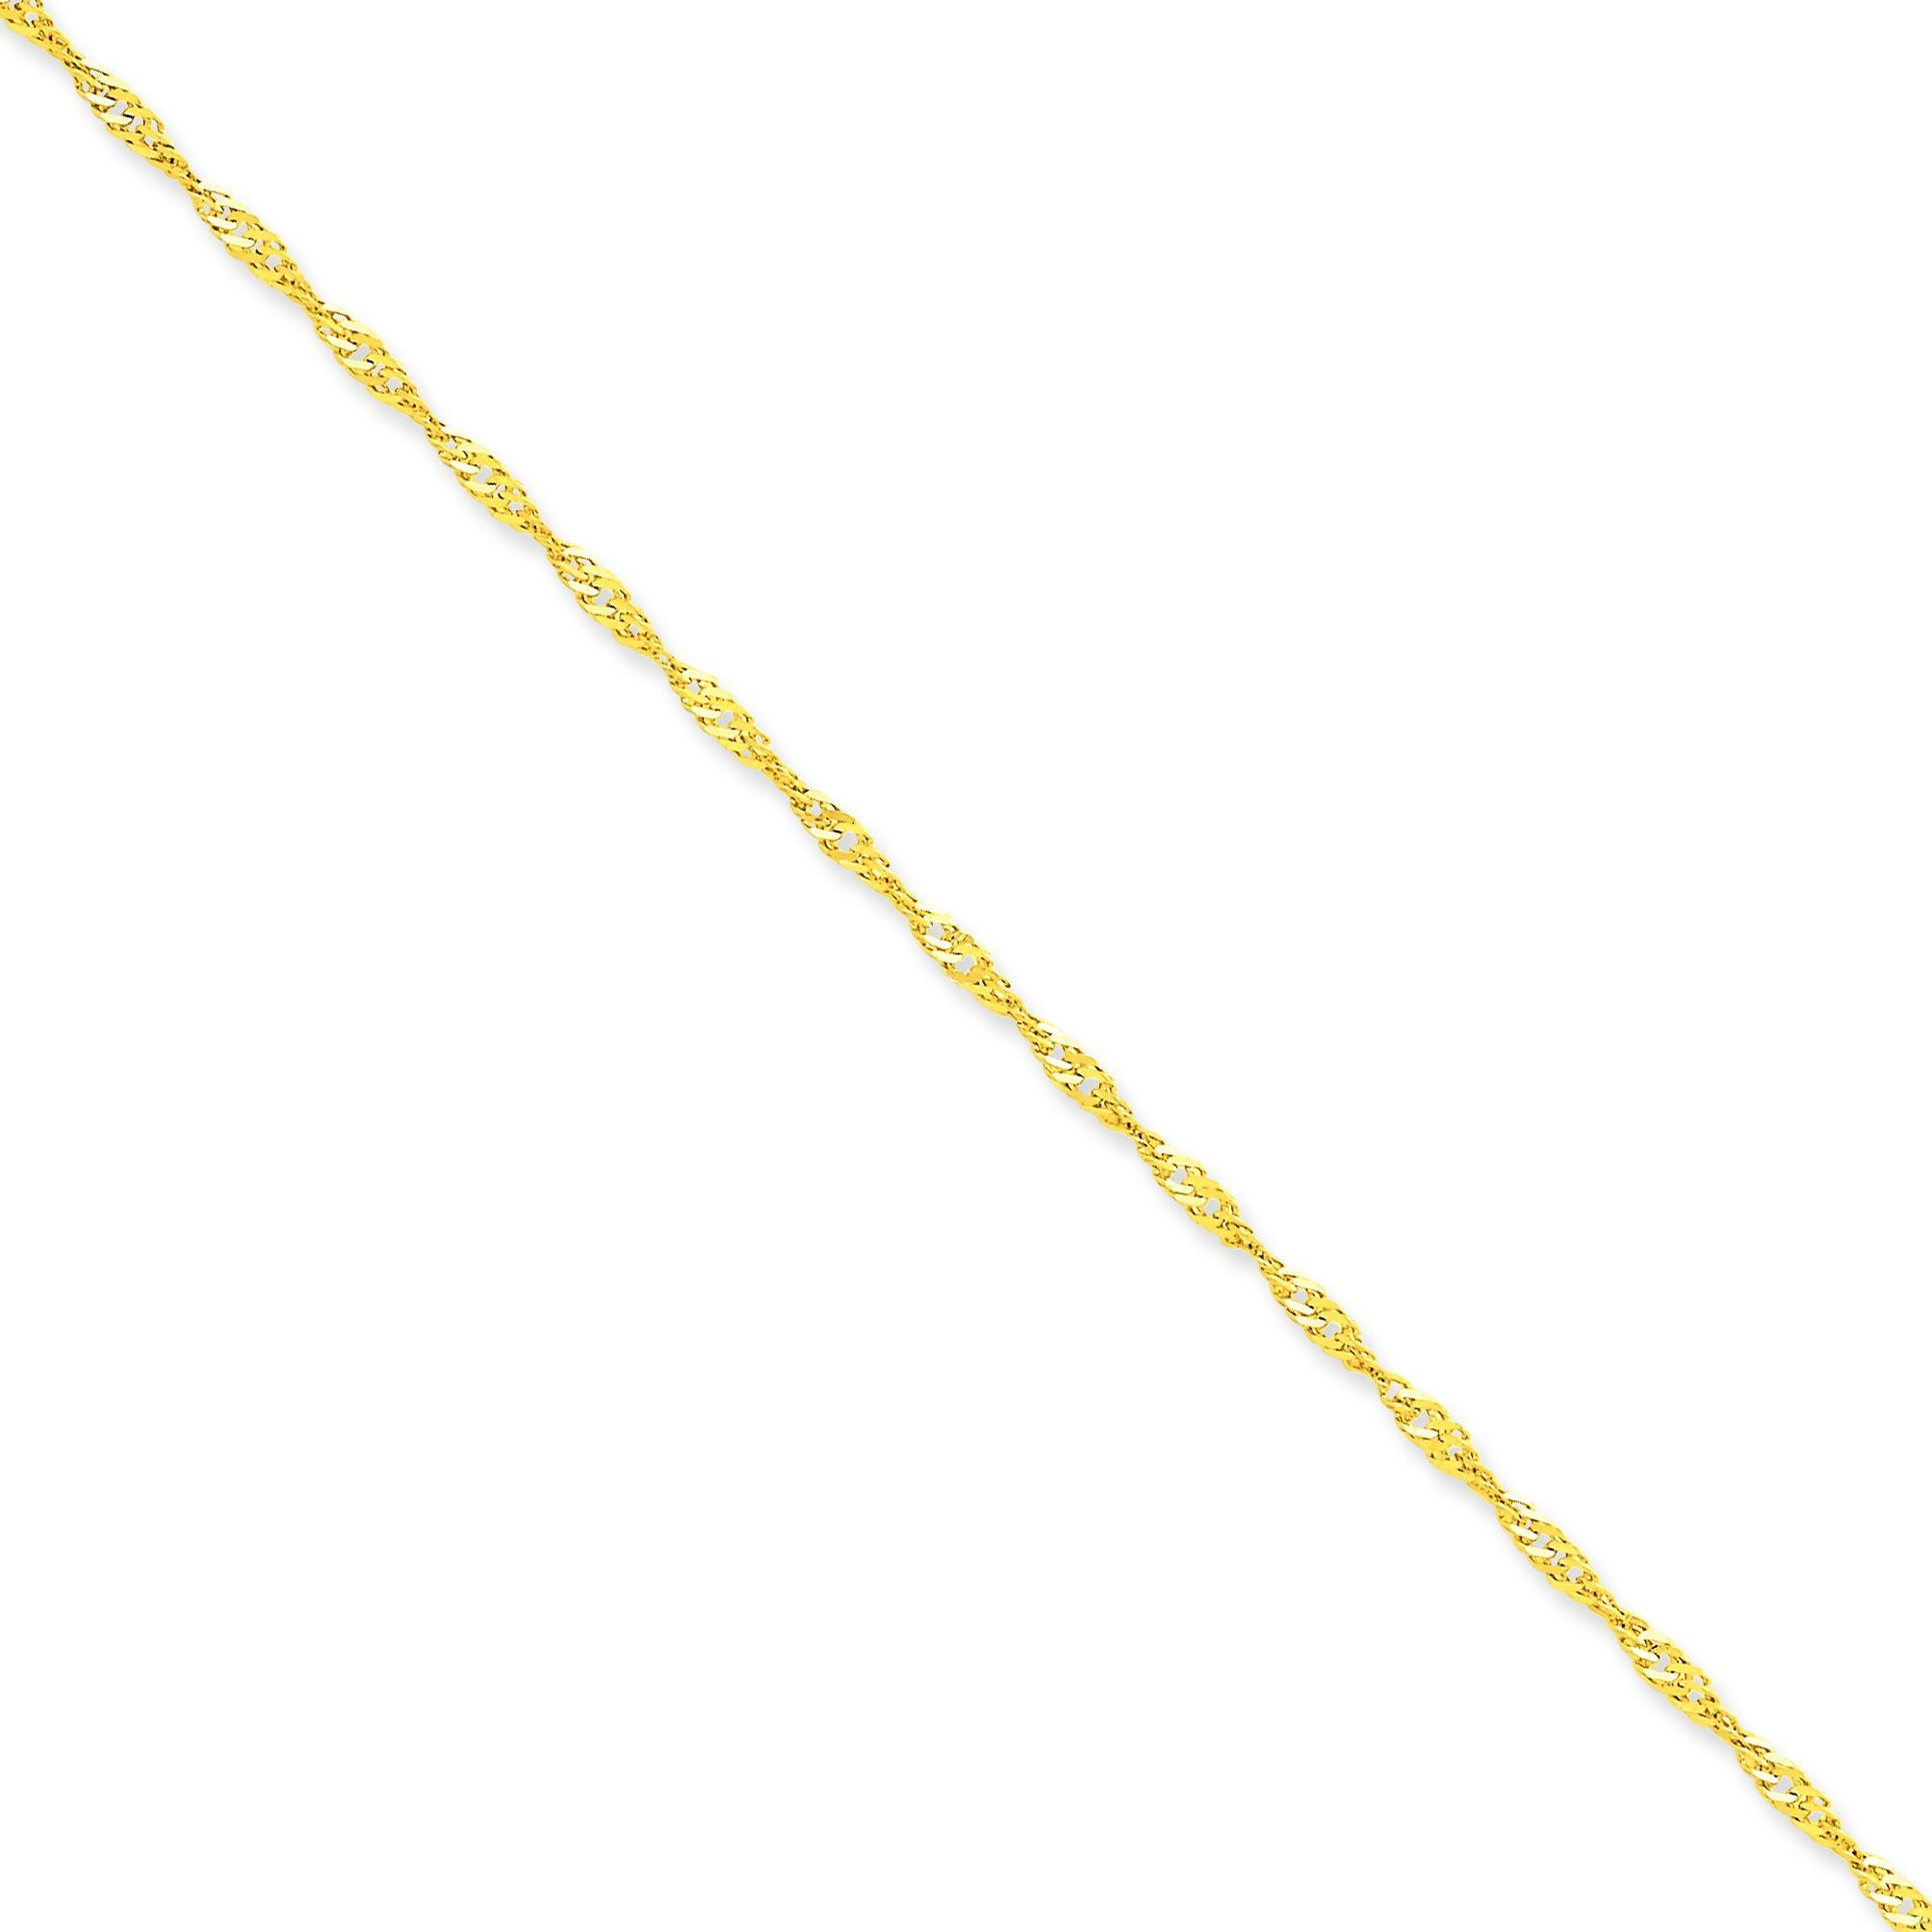 14k Yellow Gold 7 inch 2.00 mm  Singapore Chain Bracelet